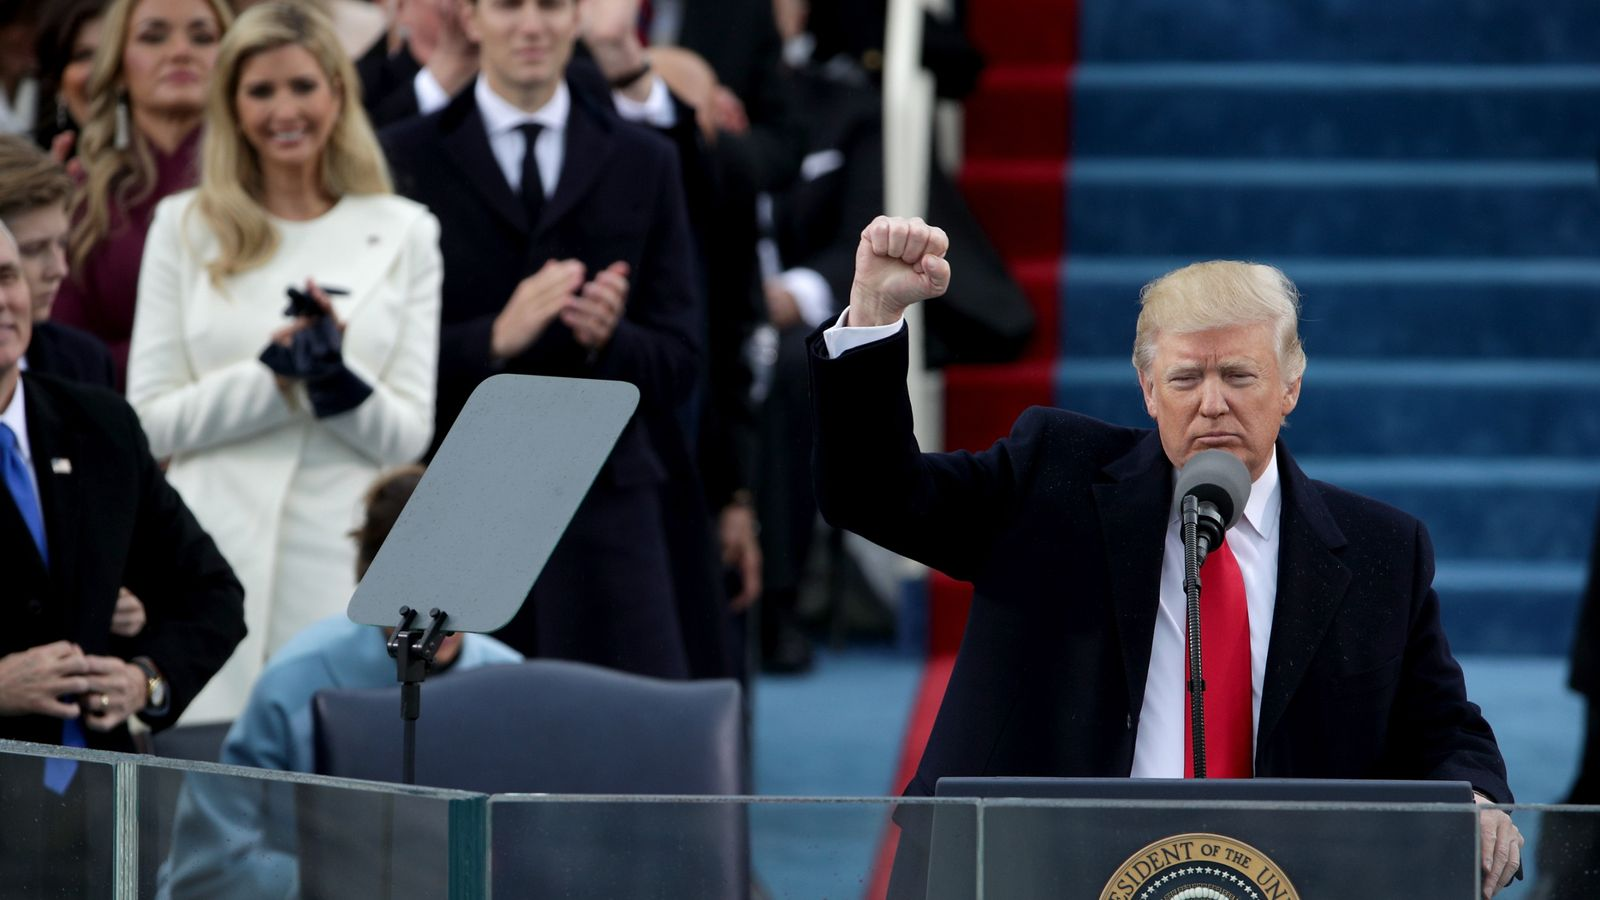 Donald Trump gives fist salute during inauguration